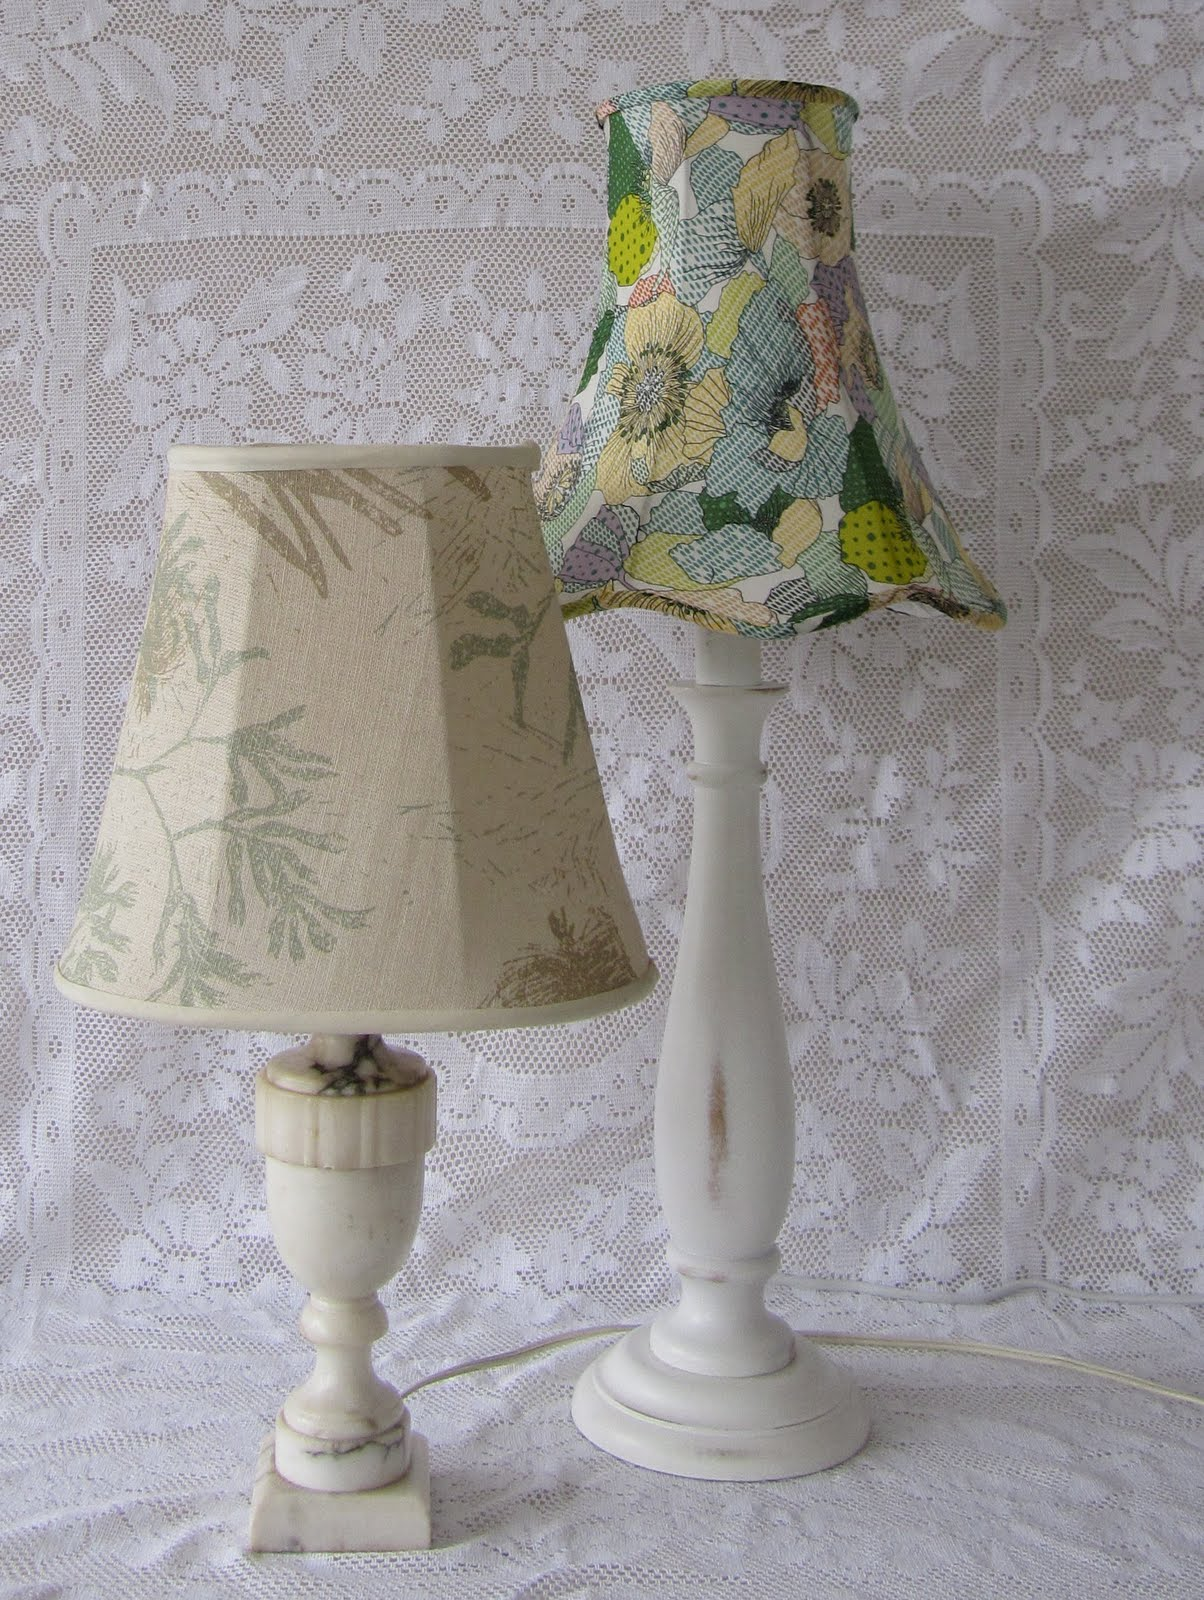 Small things simple pleasures how to recover a lampshade tutorial ive just recovered an old frame with fabric for the childs room as far as classic proportions go this ones too small for the stand but in this case keyboard keysfo